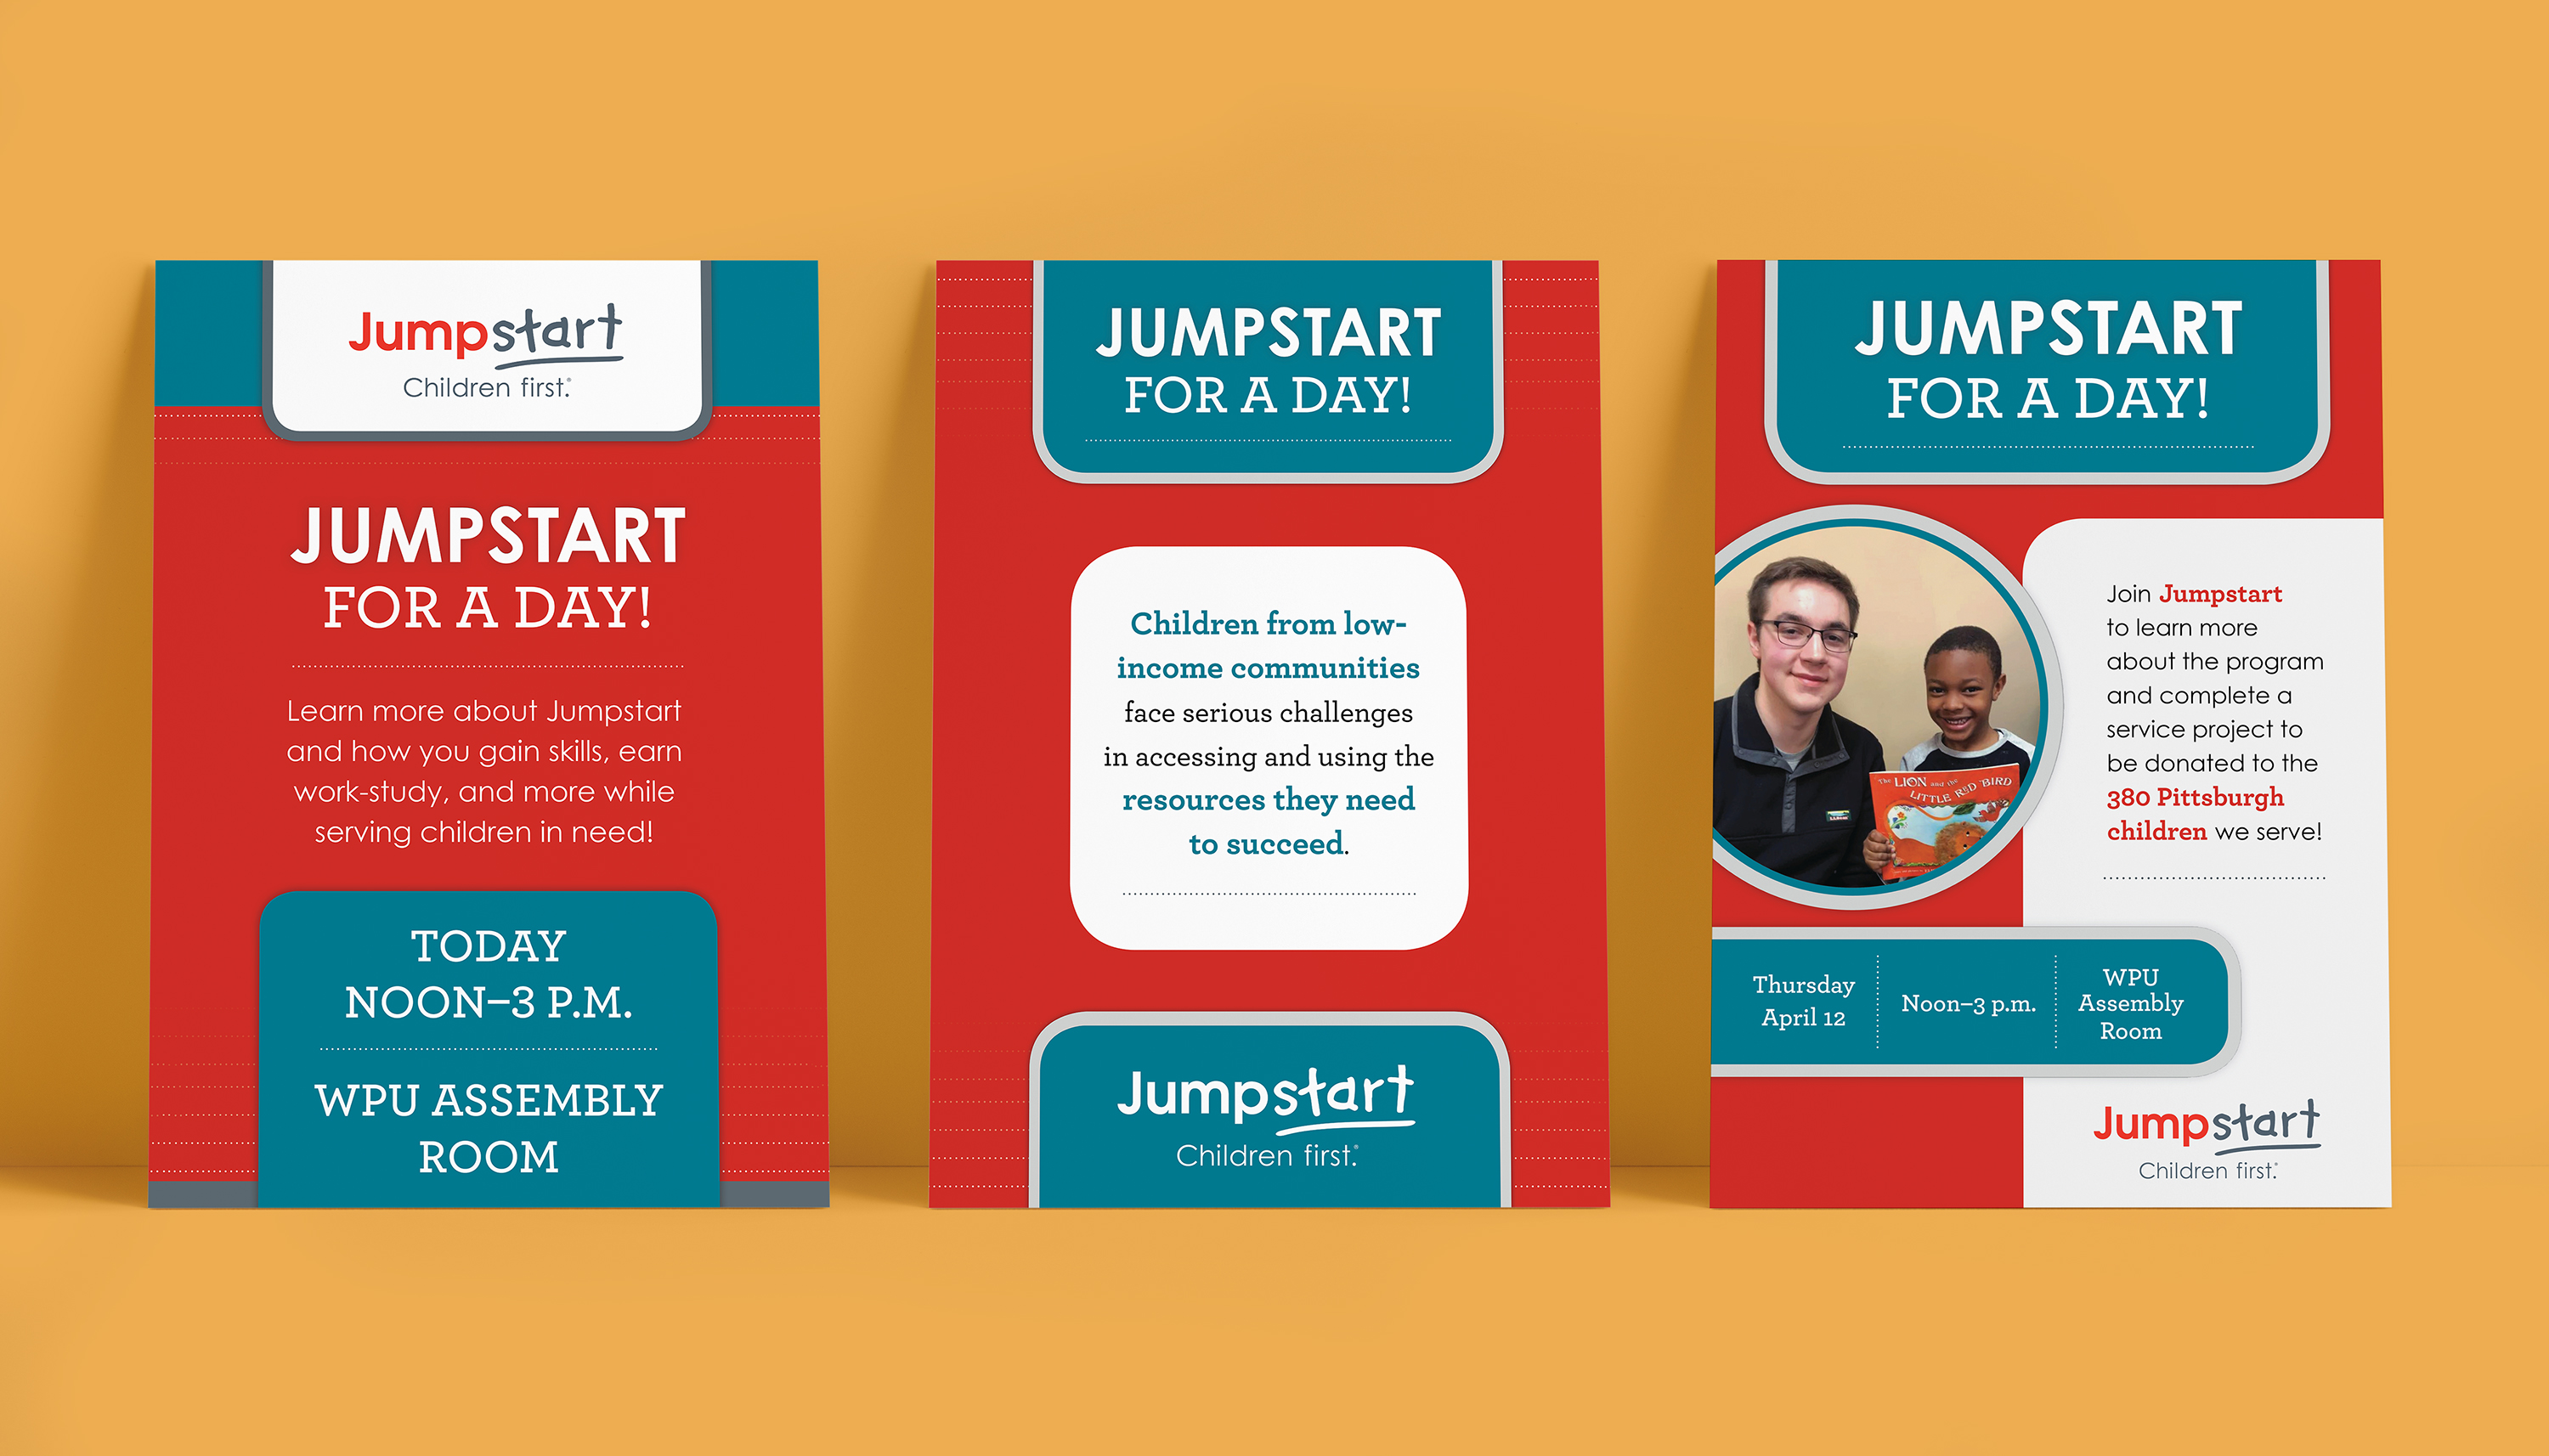 A series of three poster mockups over a mustard background. The posters all incorporate rounded rectangles and a red, white, and teal color palette, as well as a large Jumpstart logo.